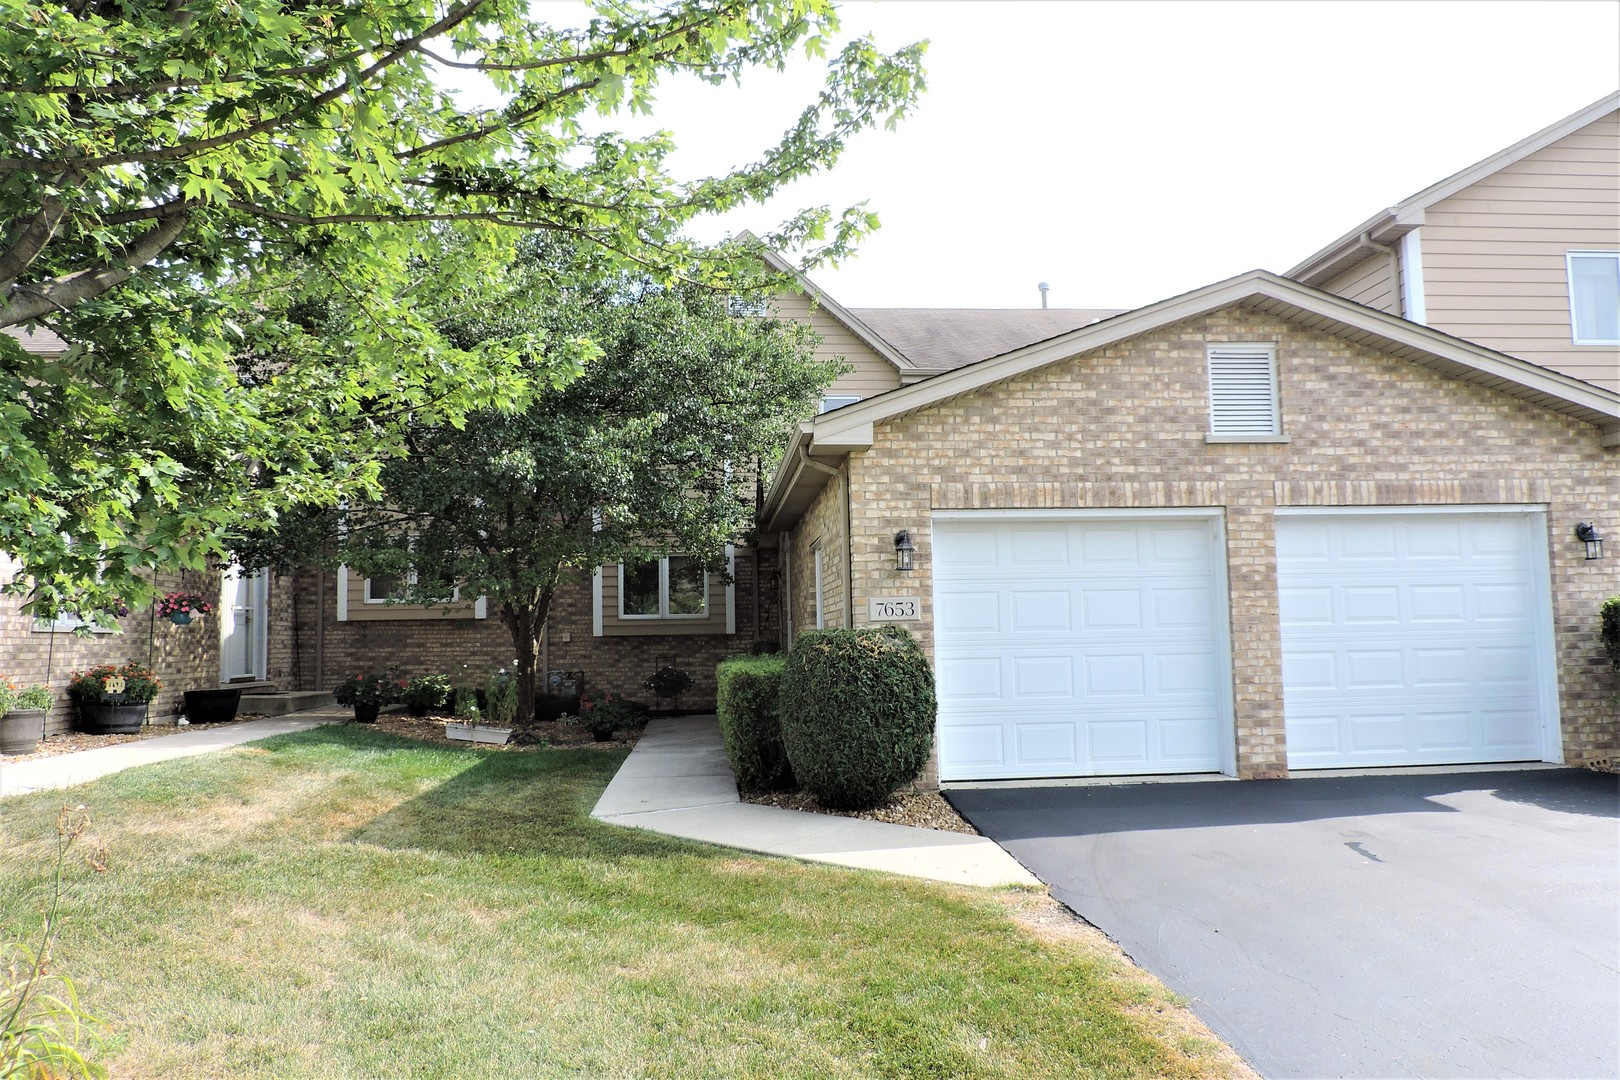 7653 Richardson Lane, Tinley Park in Will County, IL 60487 Home for Sale